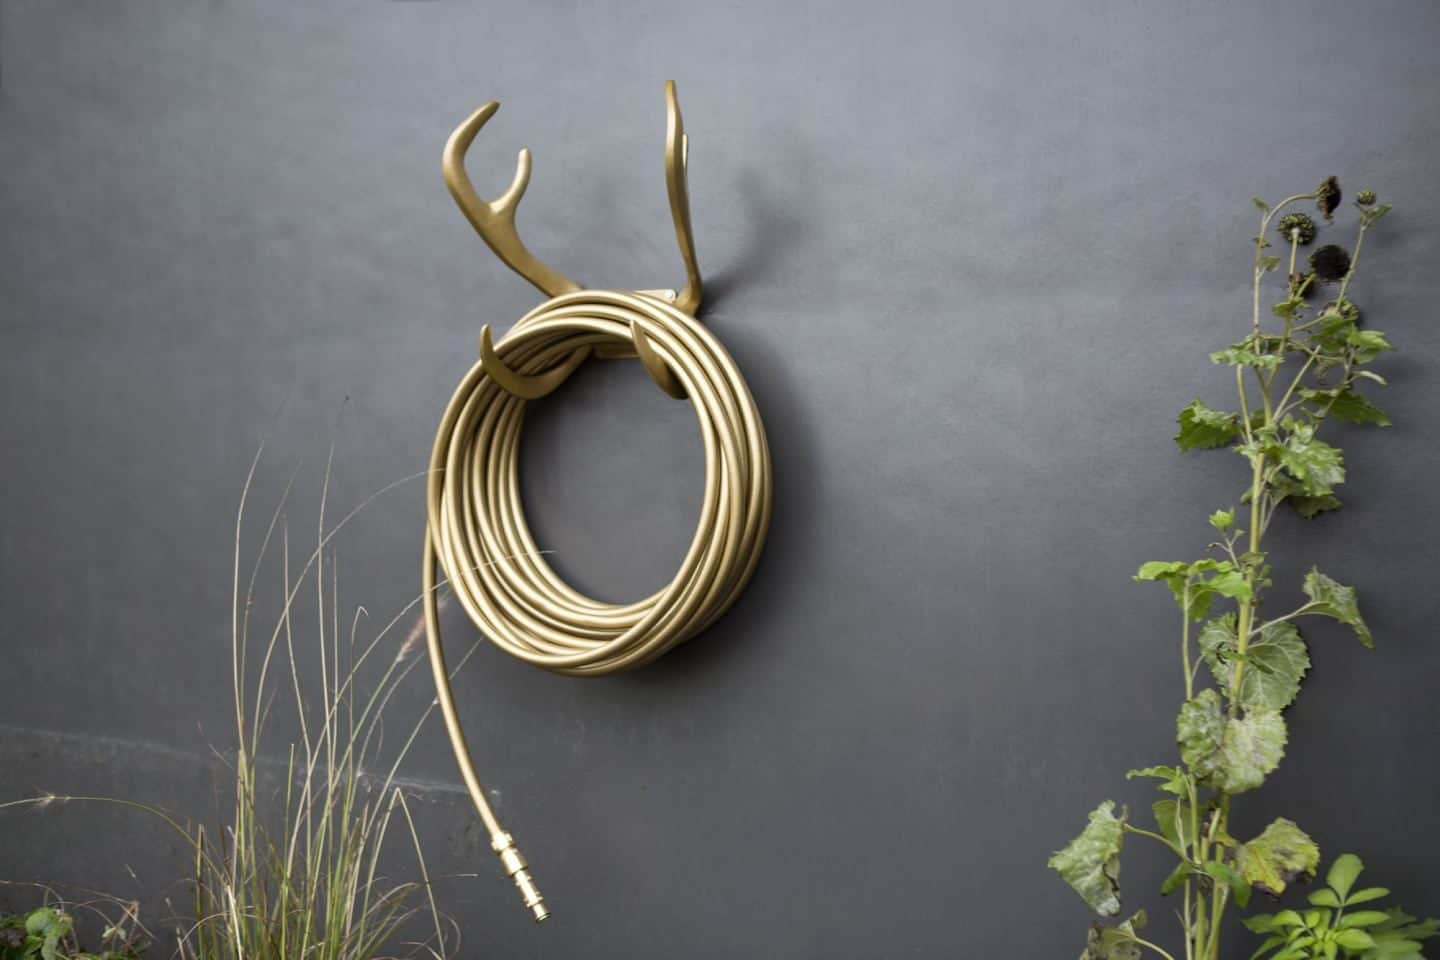 Garden Glory - Stylish garden equipment - gold garden hose wall-mounted on gold antlers